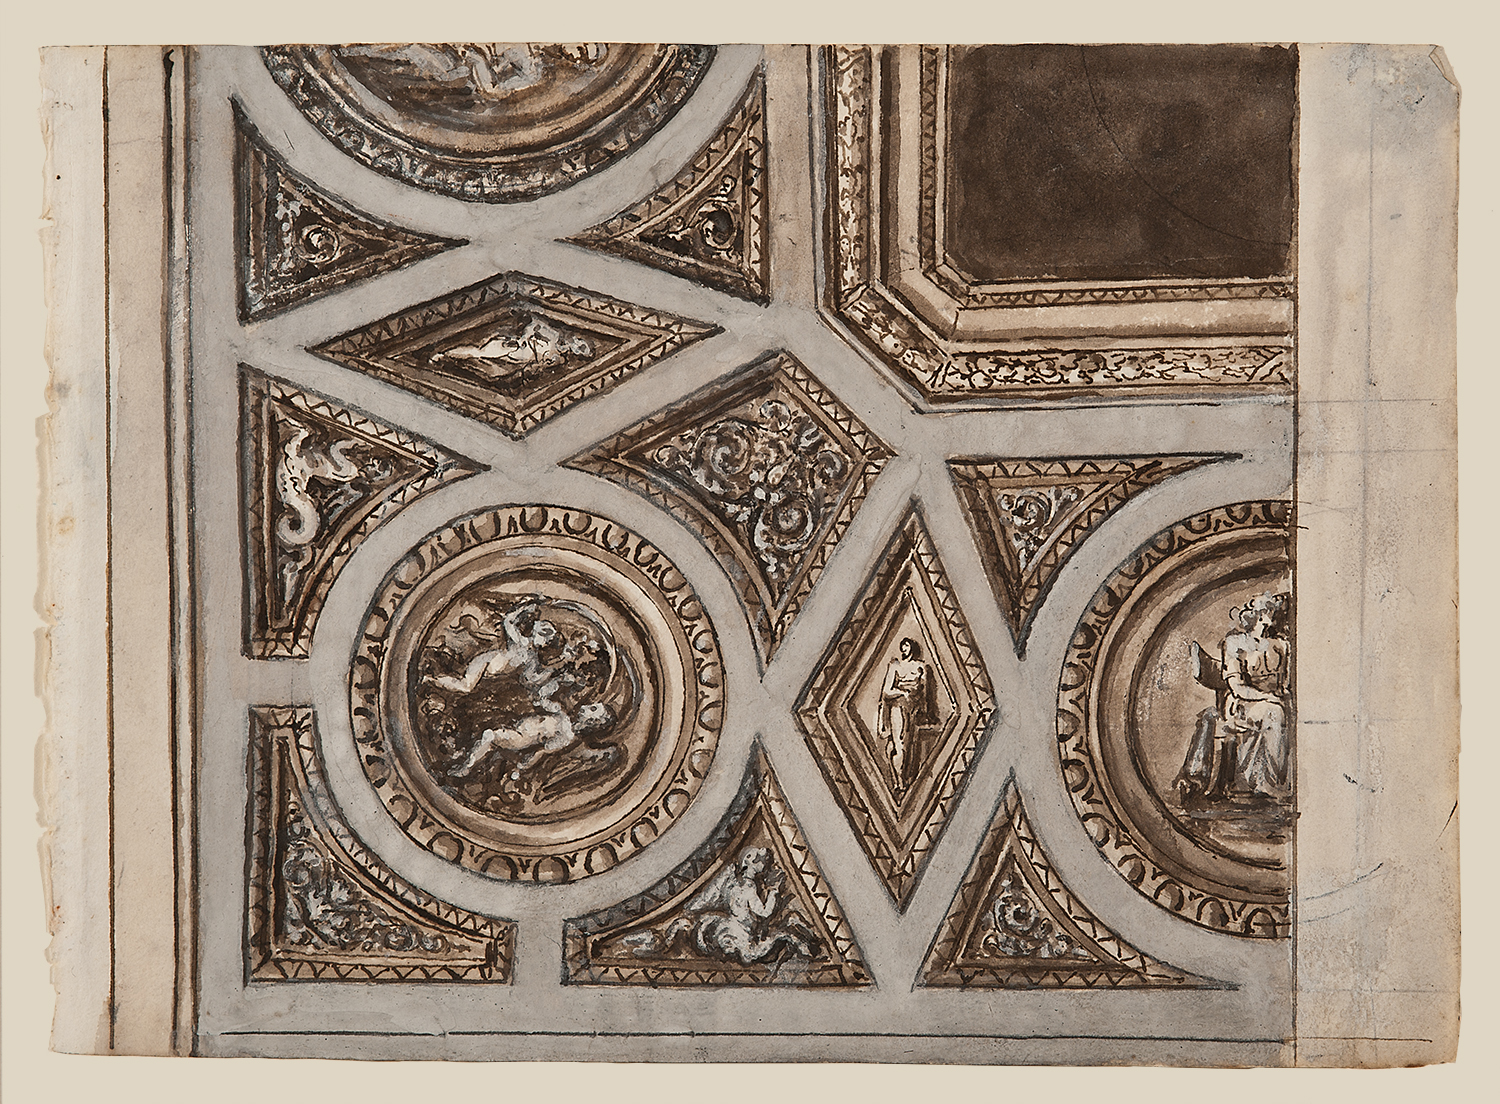 """Italian School, c. 1800, Architectural Detail 1440, ink, lavis (wash) and gouache on paper,14 x 15 1/2"""" framed"""